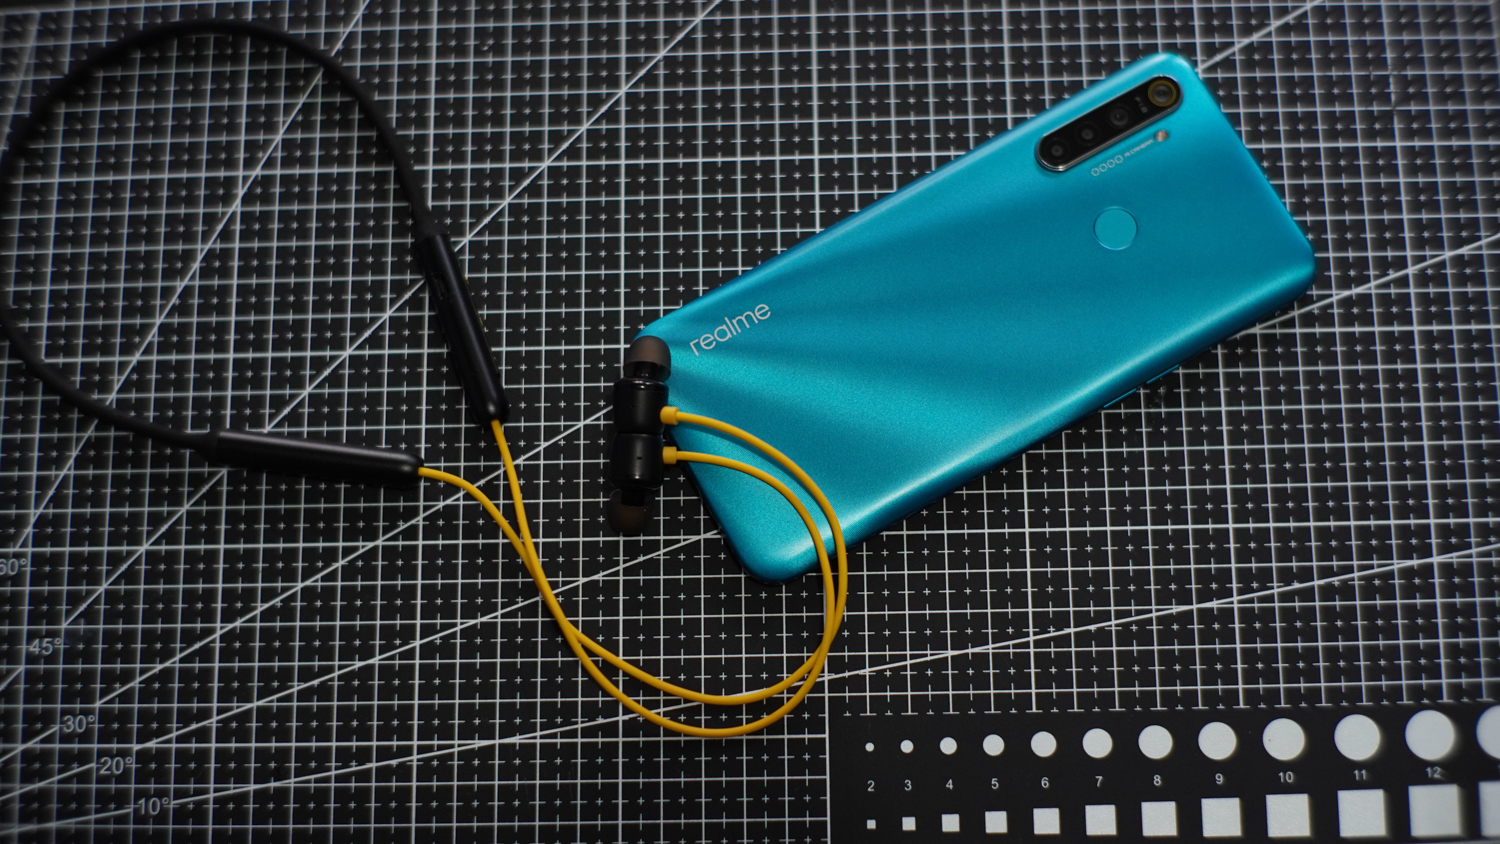 realme-5i-review-gaming-battery-life-camera-philippines (11)